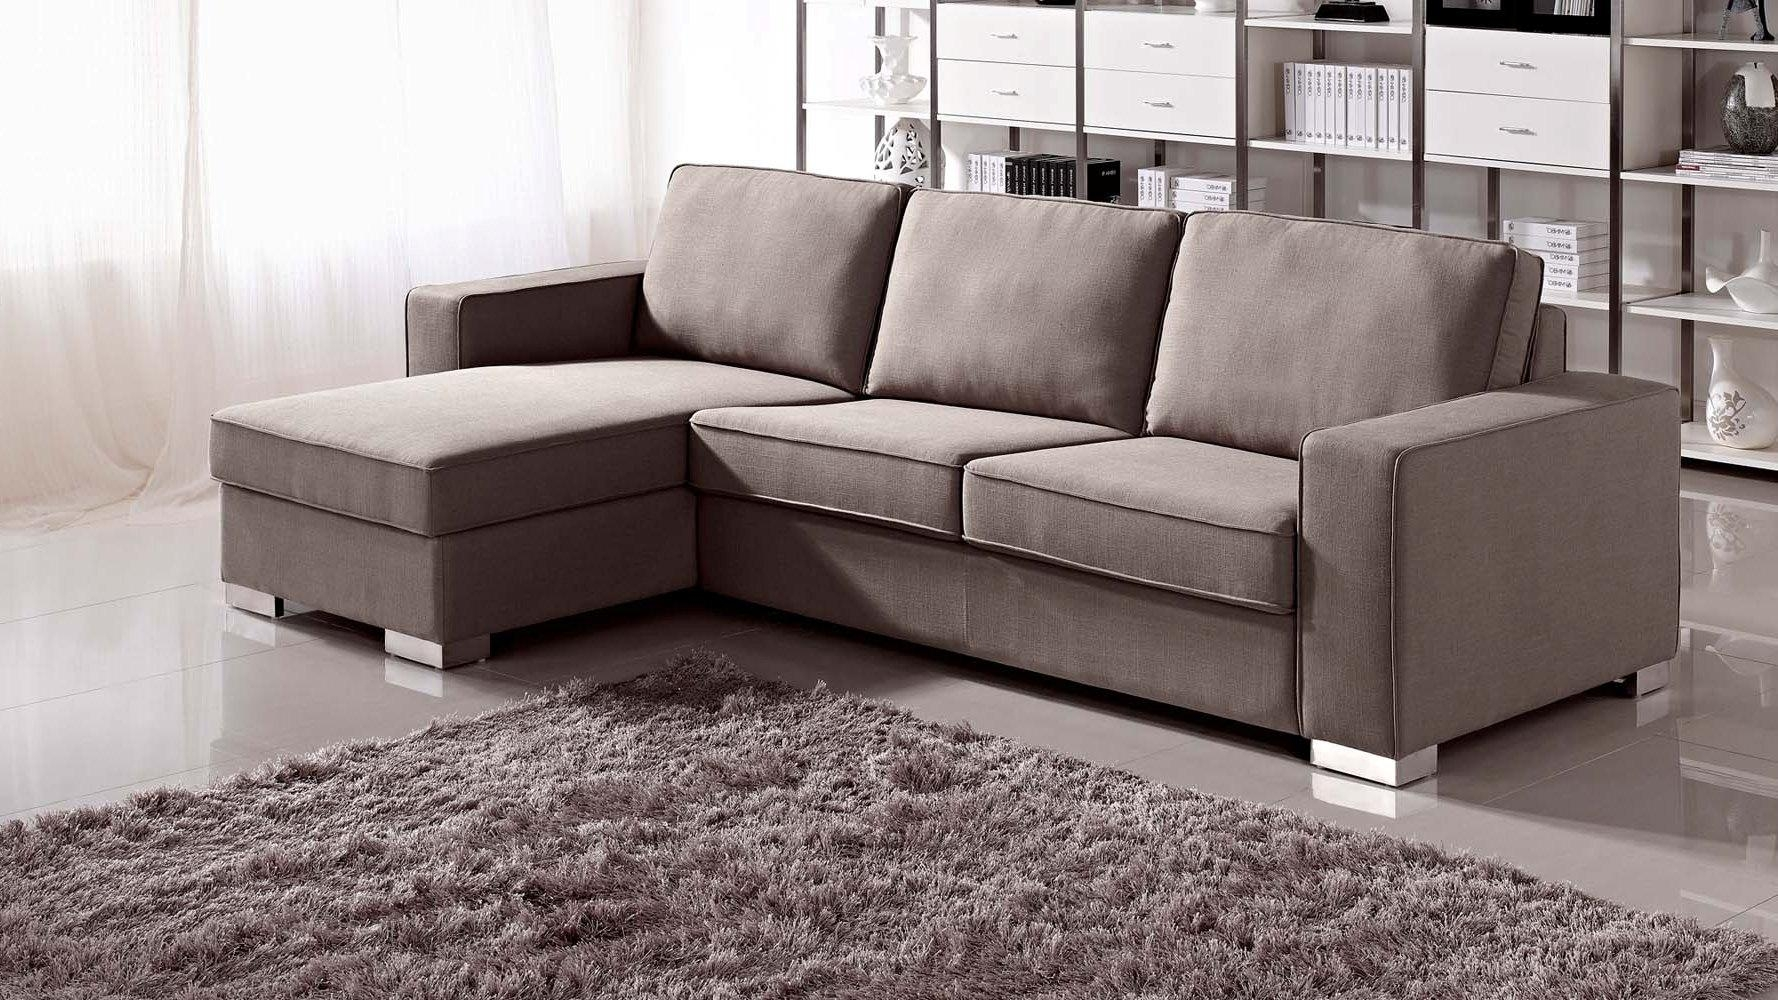 Featured Image of Sectional Sofas With Sleeper And Chaise